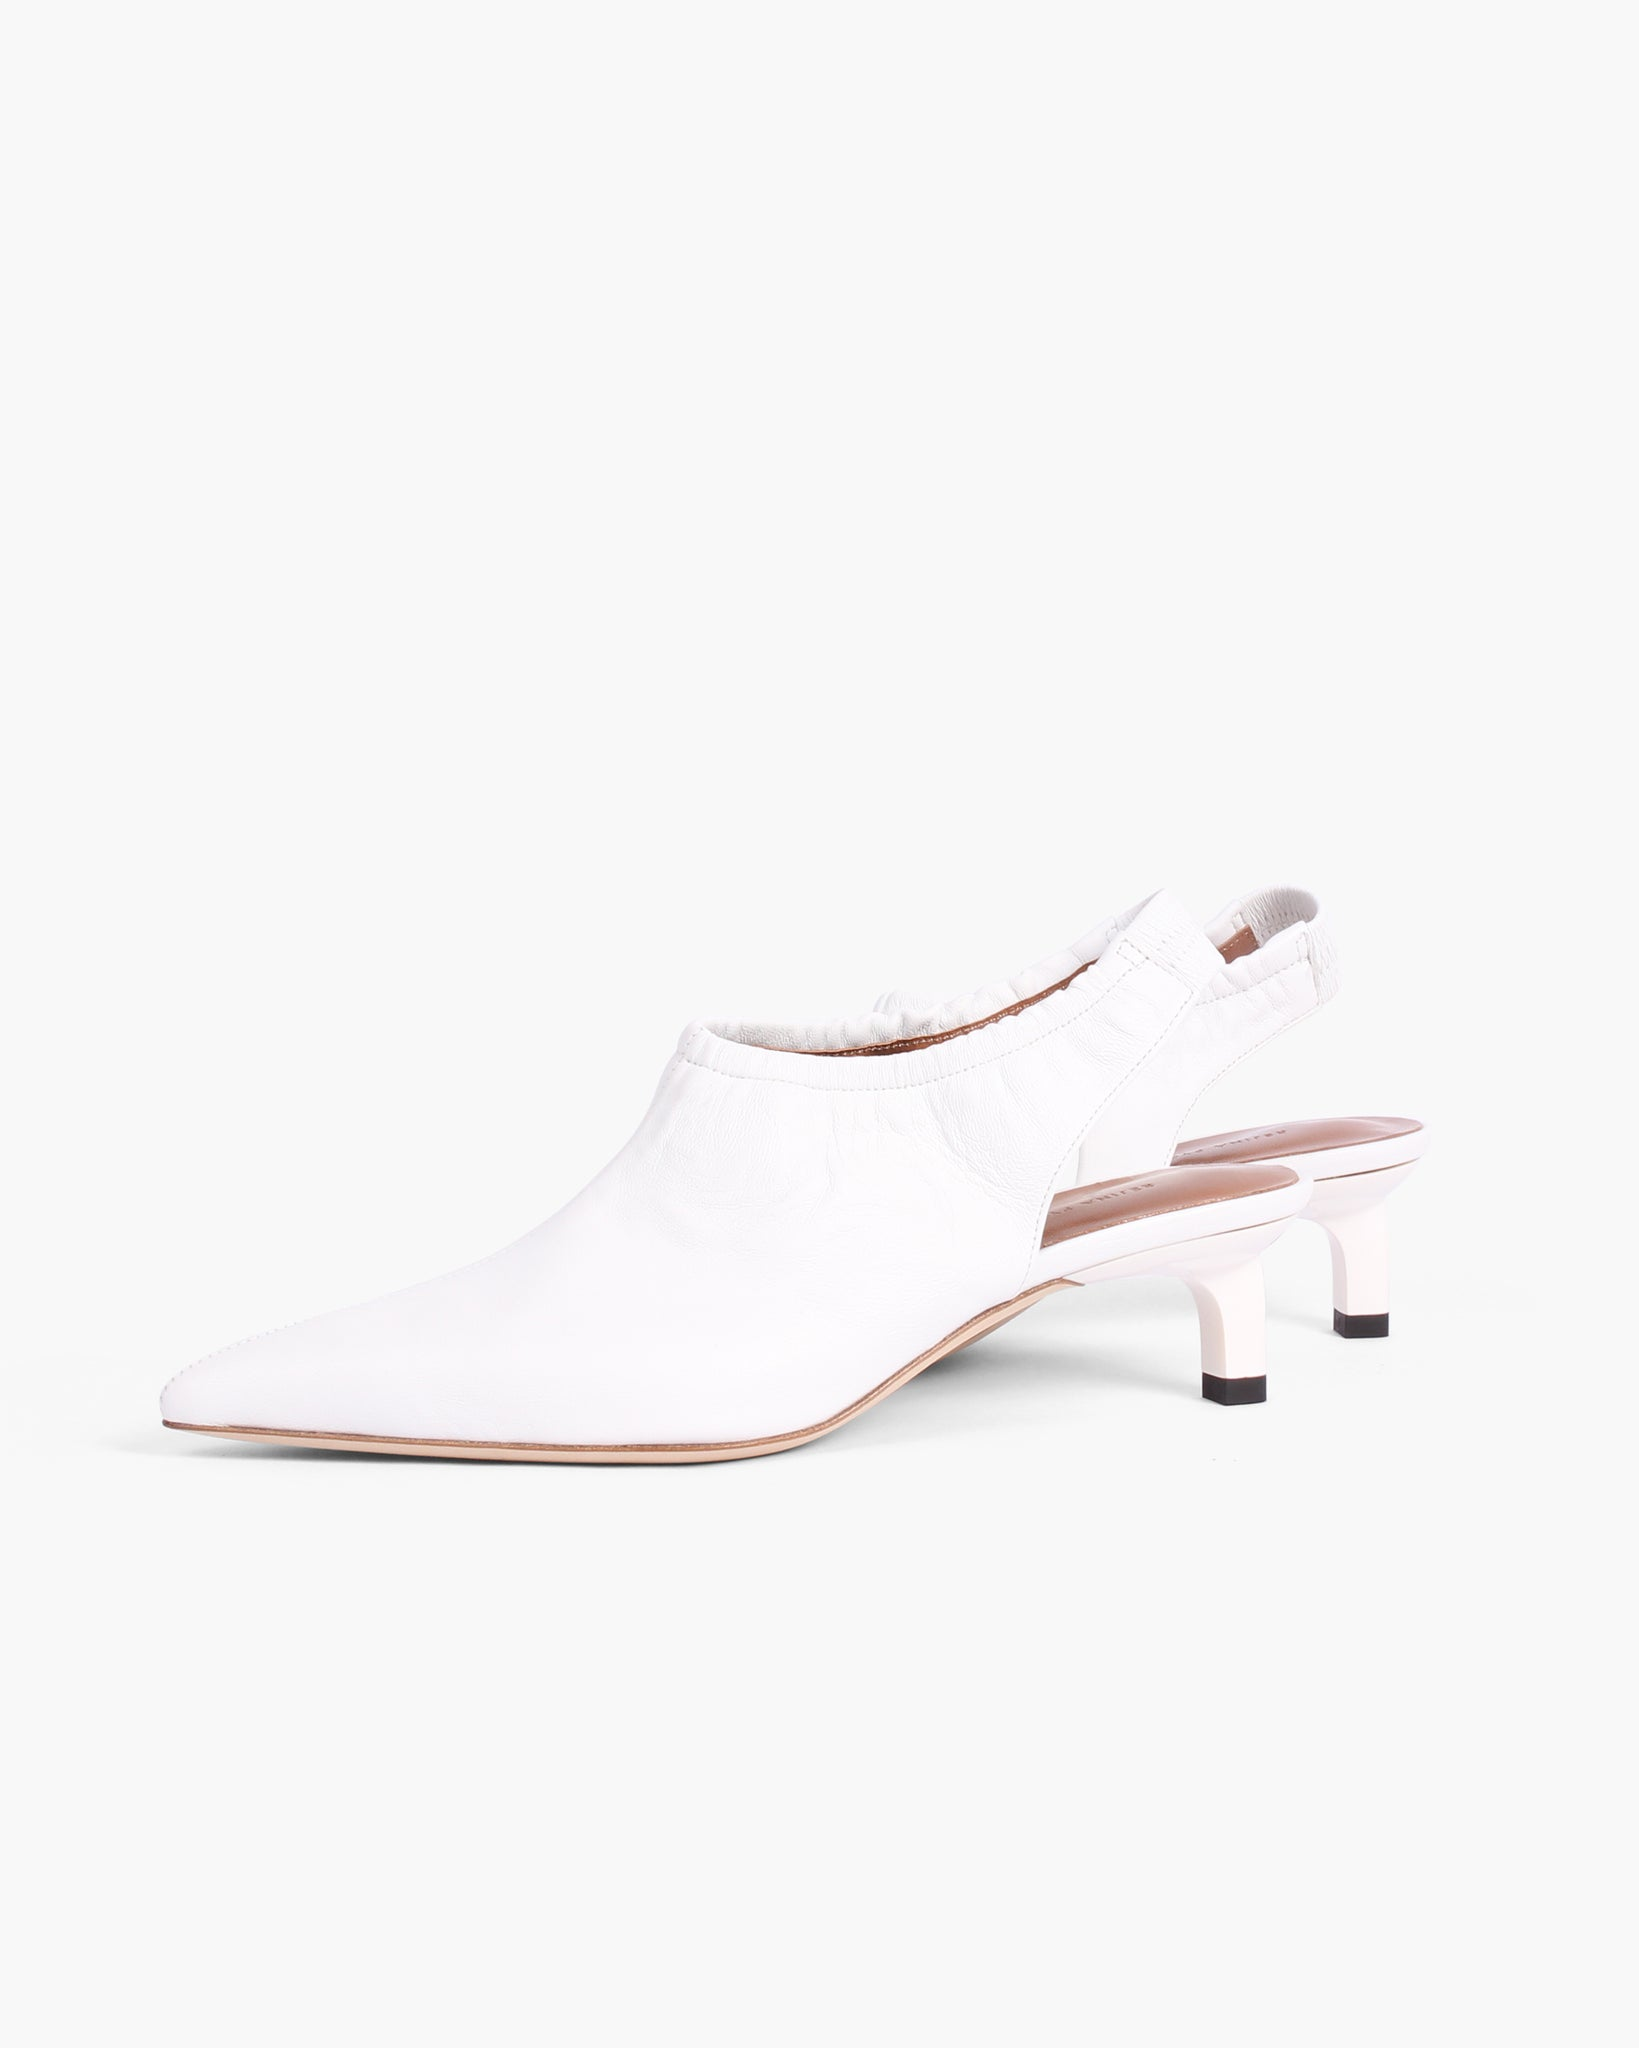 a8a882f5b63 Alissa Heels Leather White – RejinaPYO